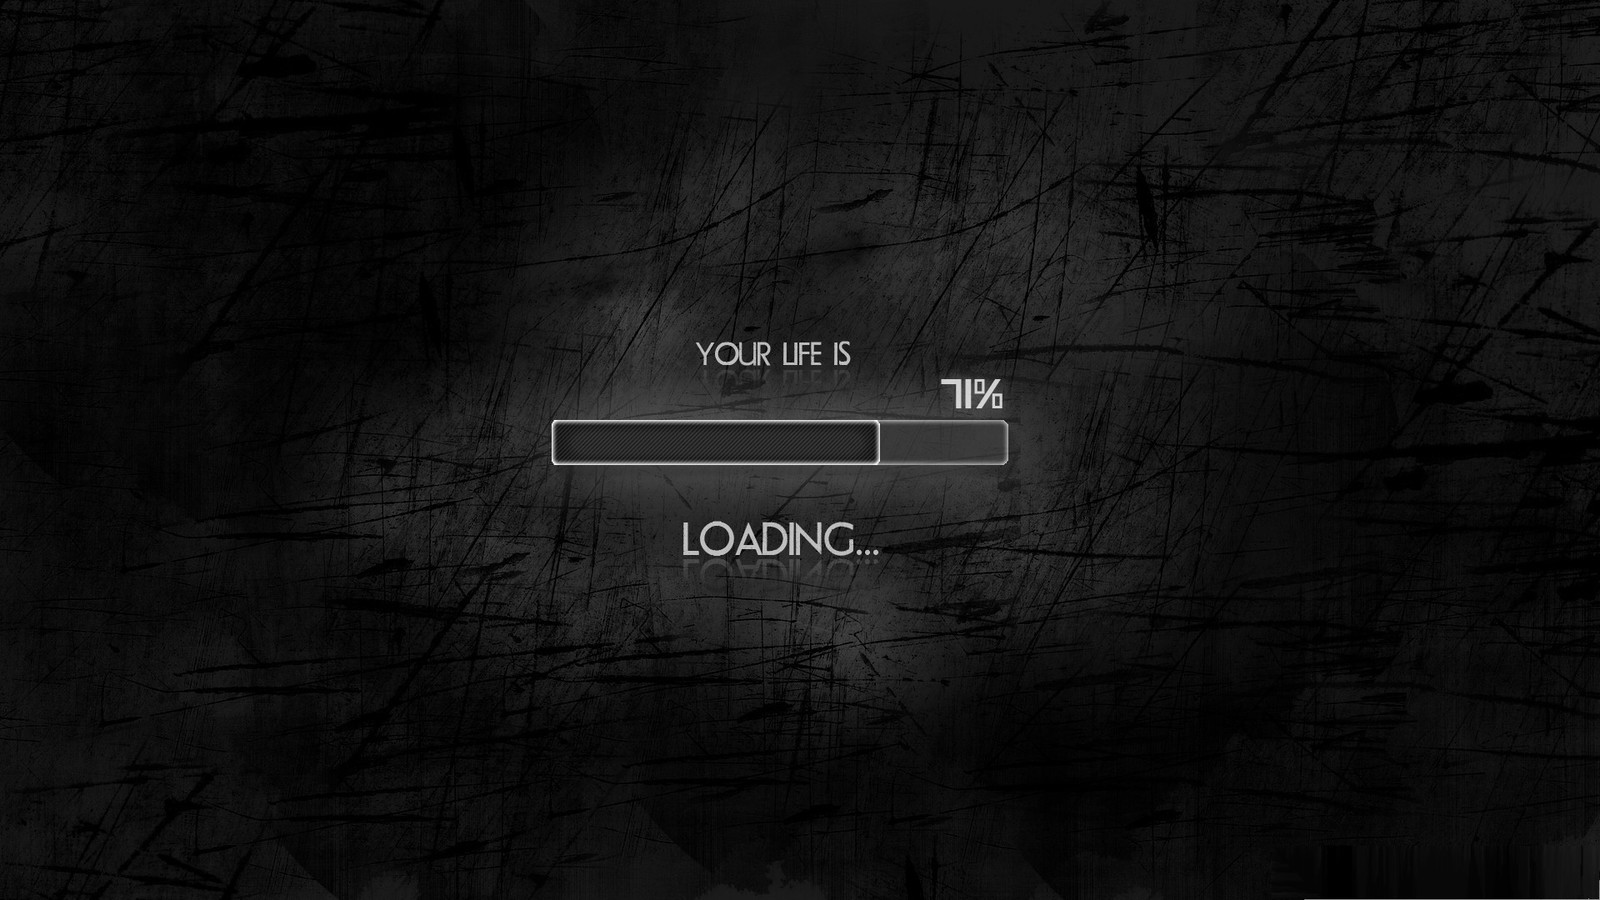 Your Life Is Loading Wallpaper